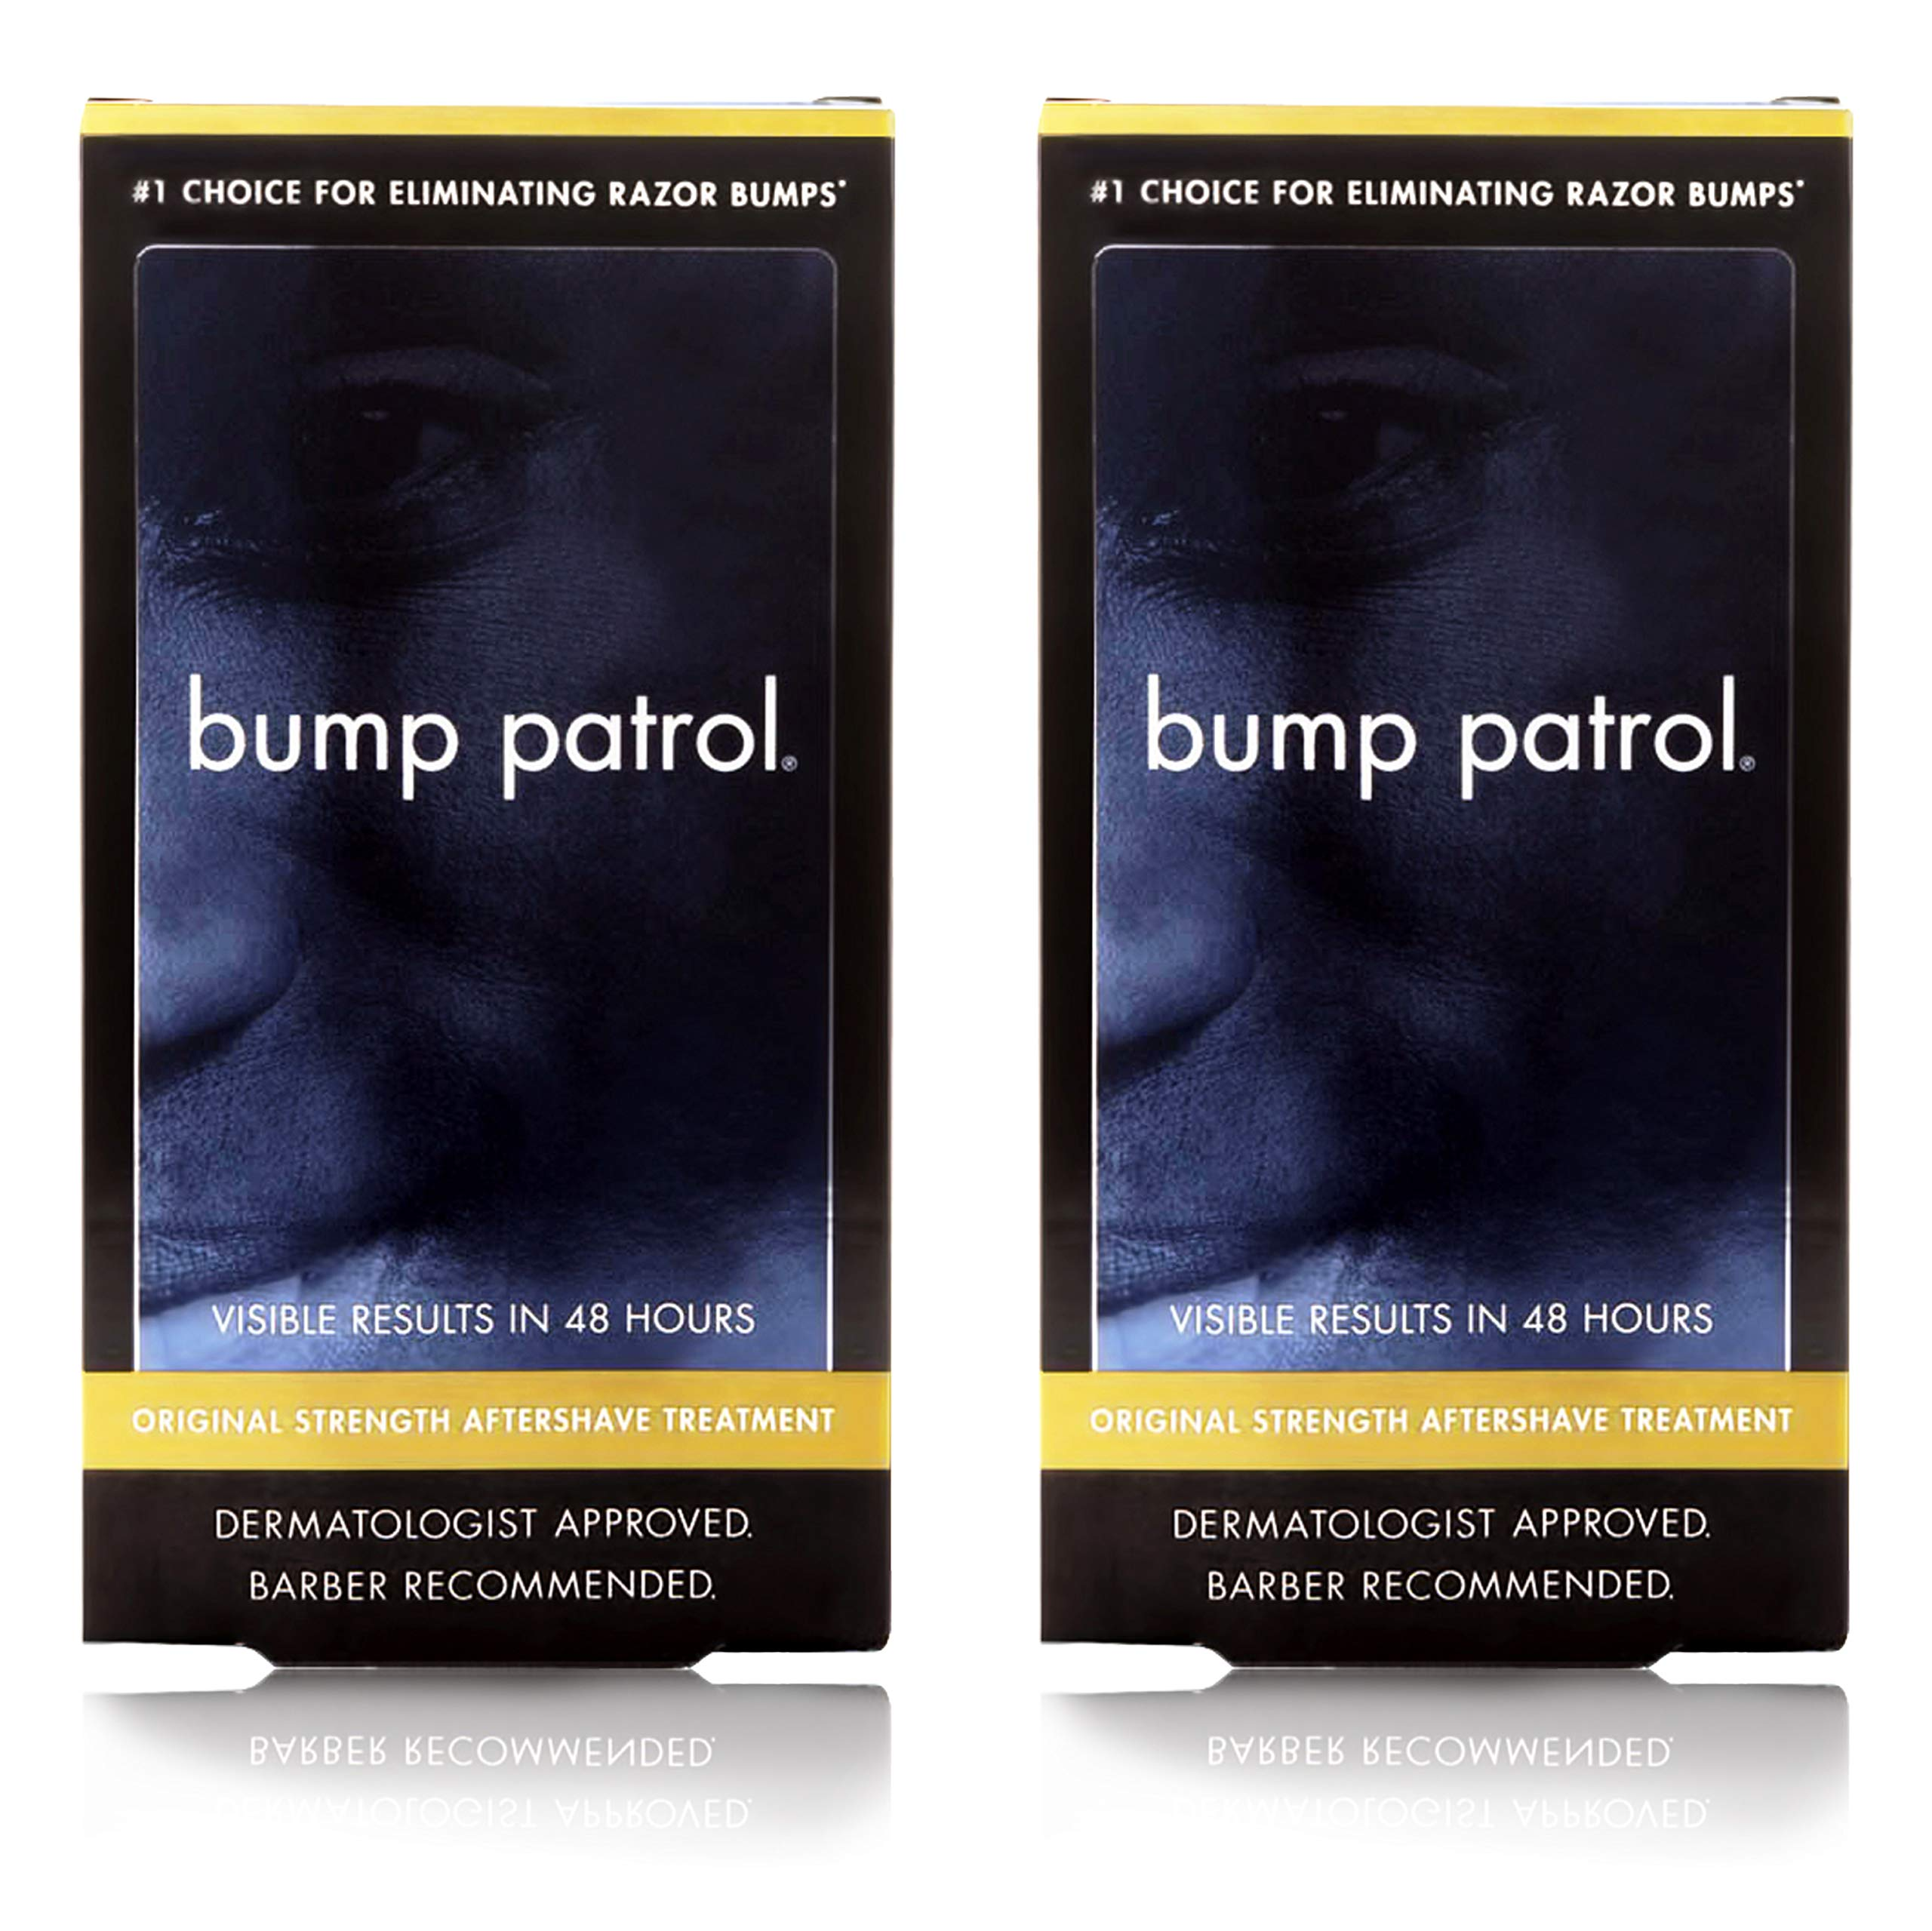 Bump Patrol Dermatologist Approved Original Strength Aftershave Treatment (2 oz) 2 Pack